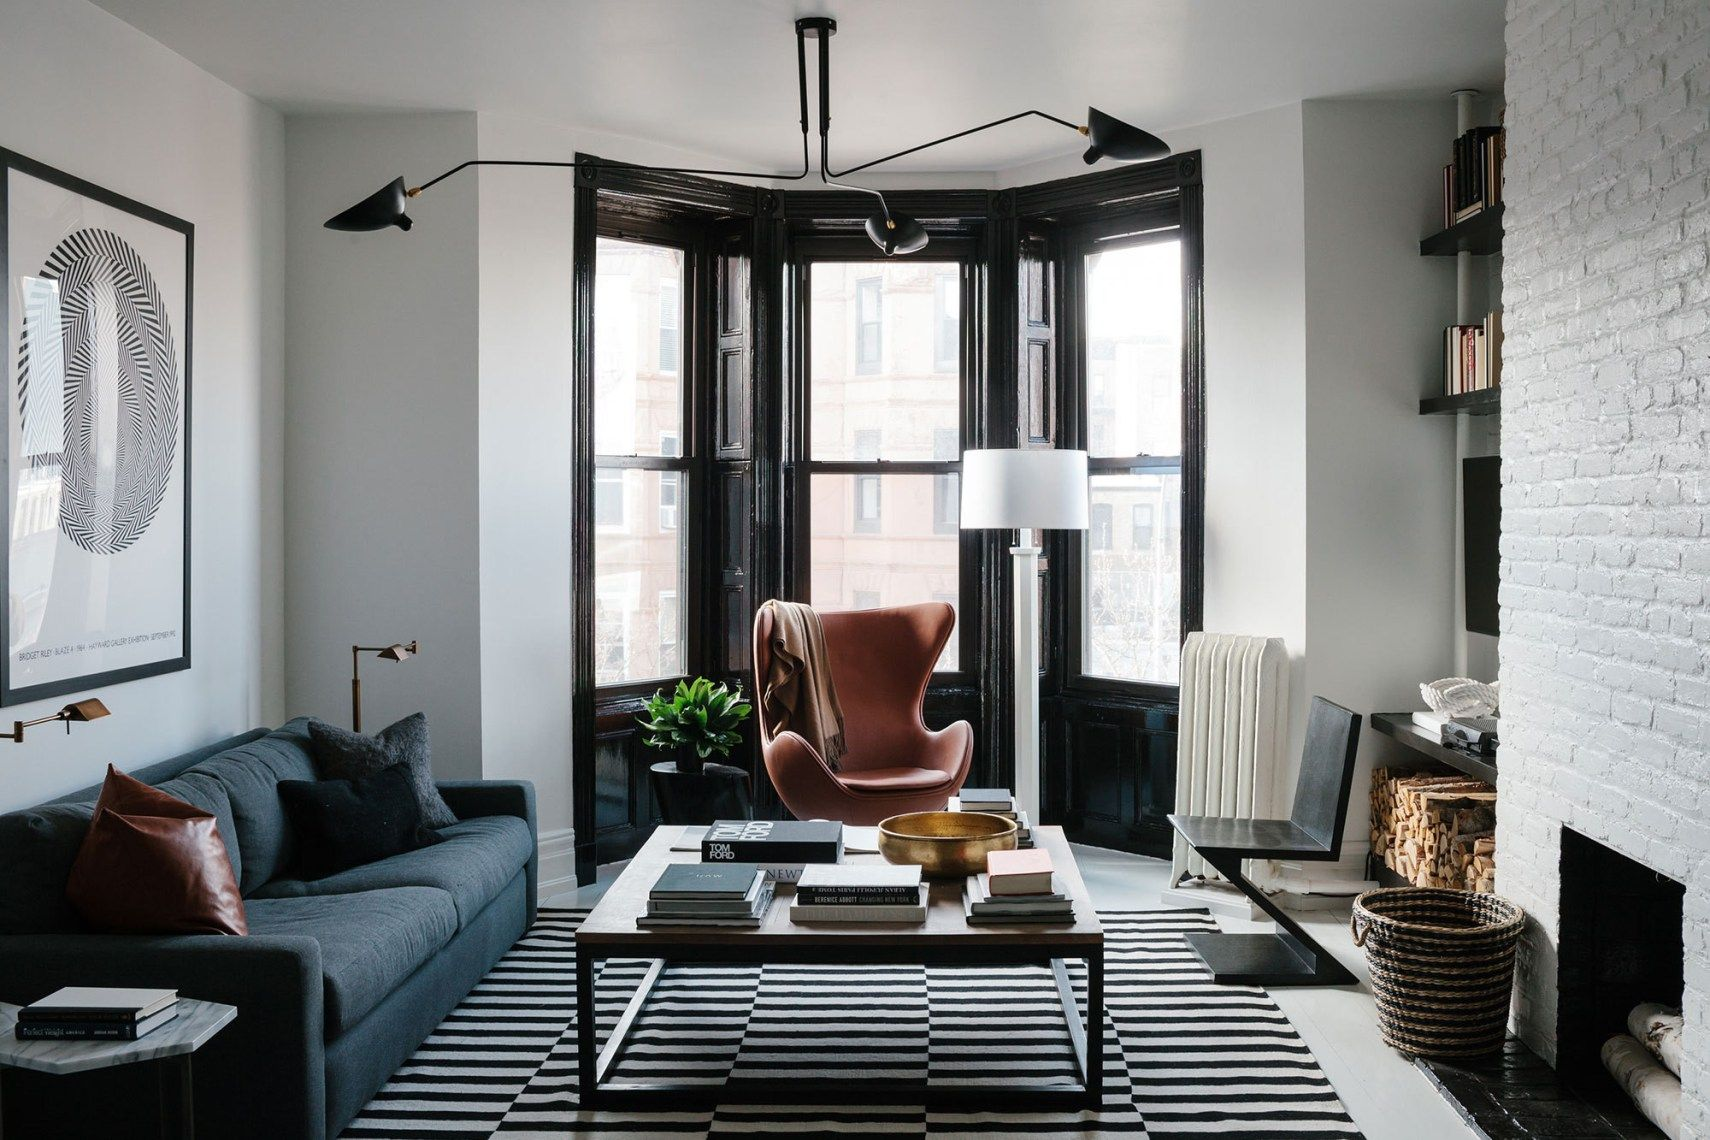 Brooklyn home in black and white - via cocolapinedesign.com ... on modern living room photography, basement kitchen living room ideas, modern entryway lighting ideas, modern orange living room idea, bedroom lighting ideas, small living room ideas, pottery barn lighting ideas, living room paint ideas, chandelier lighting ideas, modern chandeliers ideas, indoor led light strips ideas, modern column design ideas, lamp living room ideas, modern living room home, modern living furniture ideas, modern cabinets ideas, modern recessed lighting ideas, modern living room interior design, light blue walls living room ideas, modern living room books,